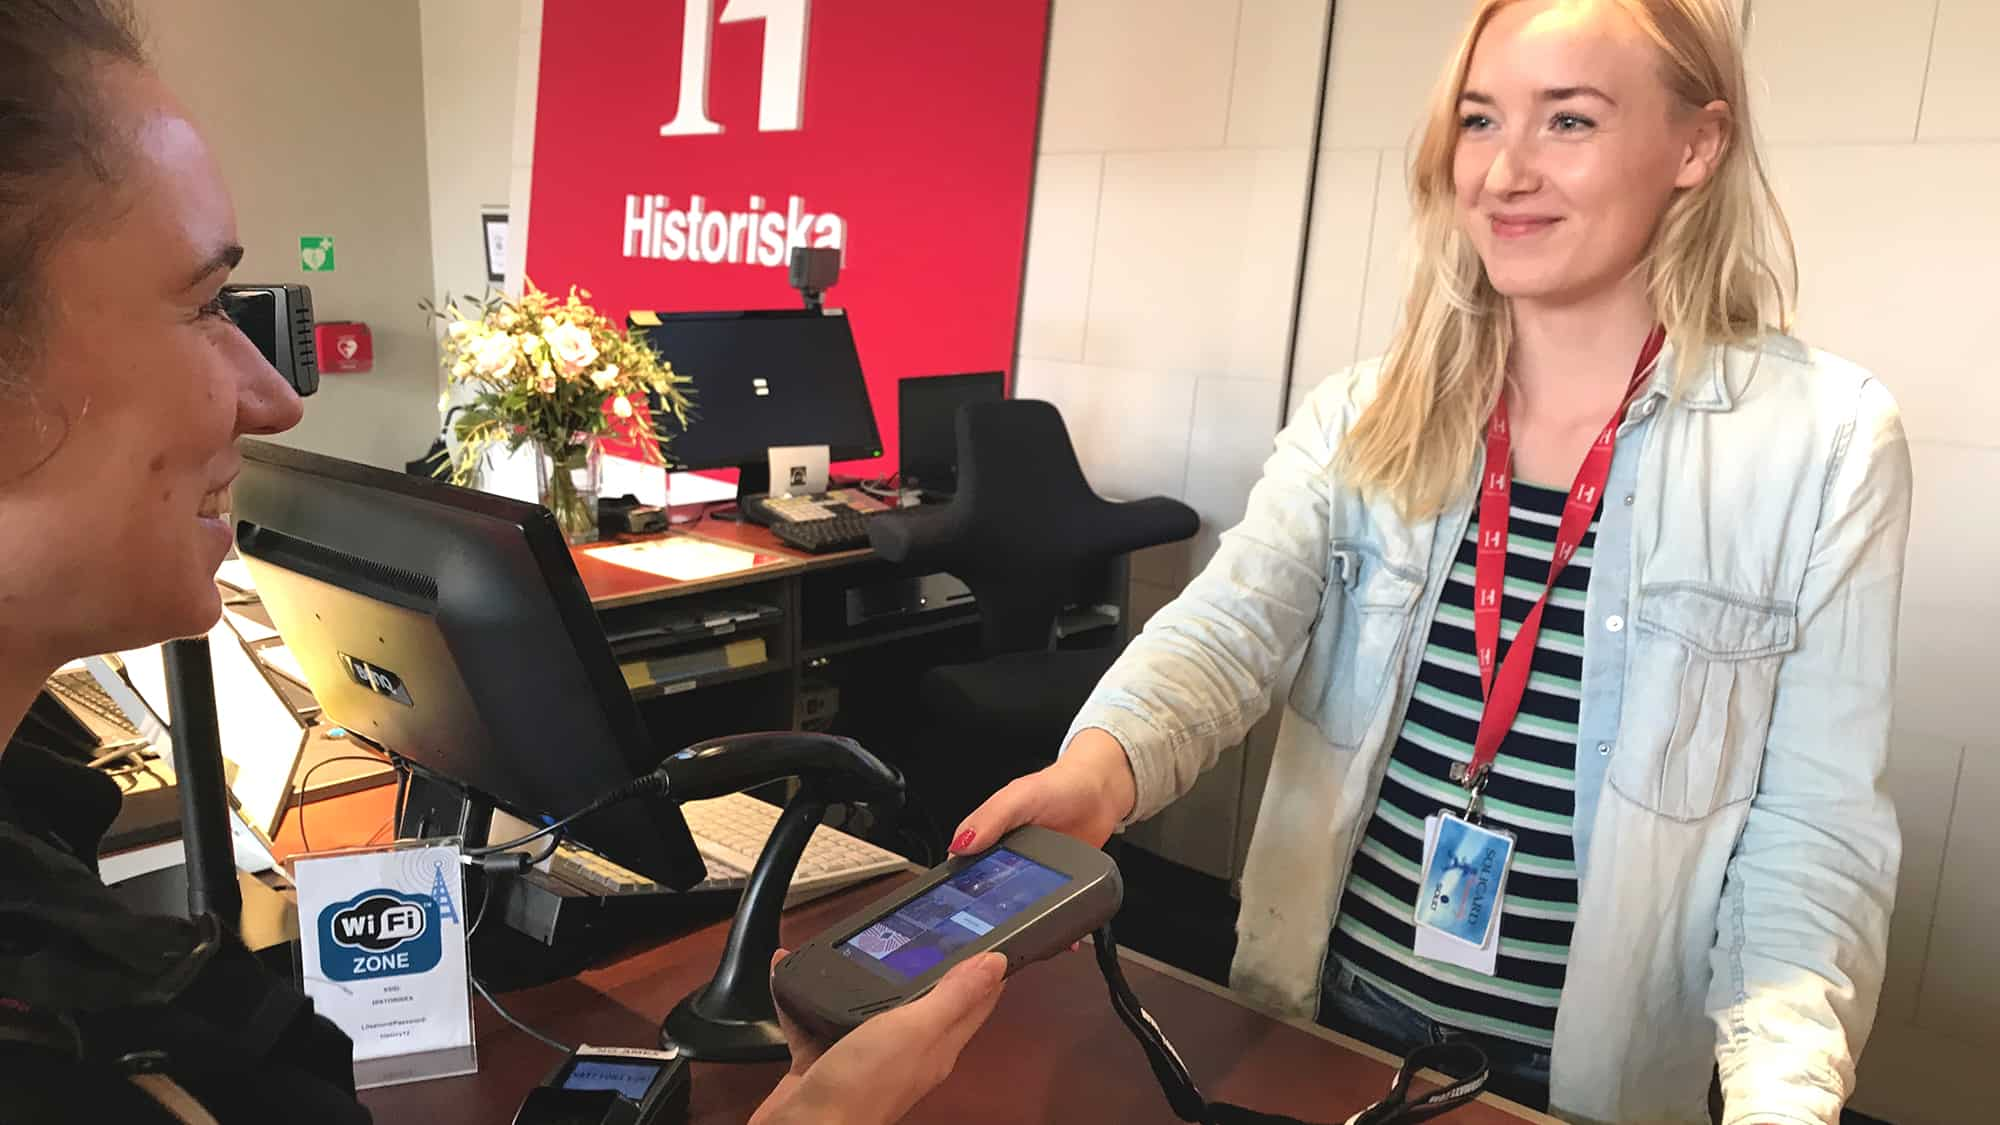 A staff member at Historiska museet is handing over a guide device to a visitor